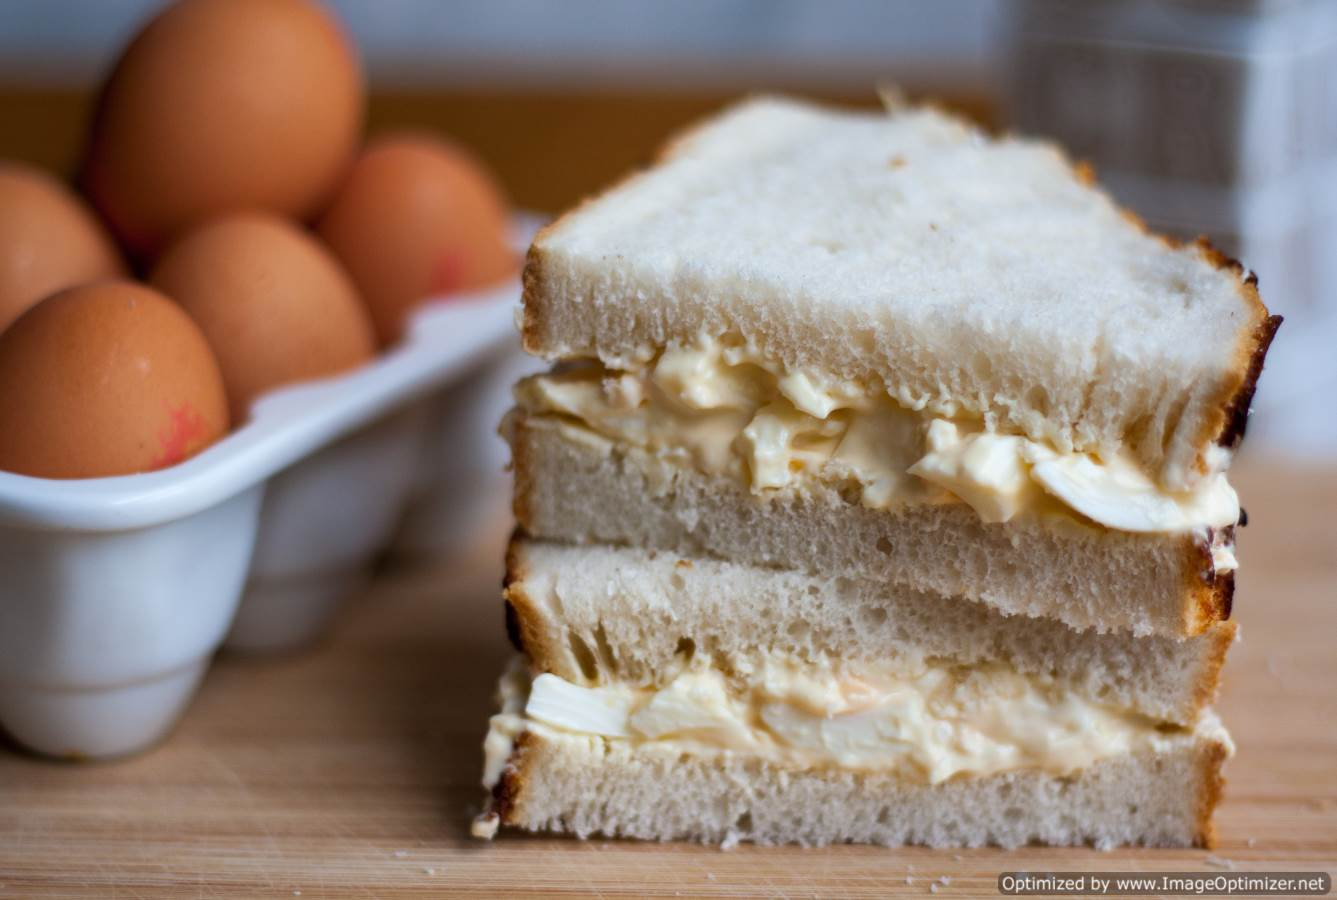 Egg Mayonnaise Sandwich Filling